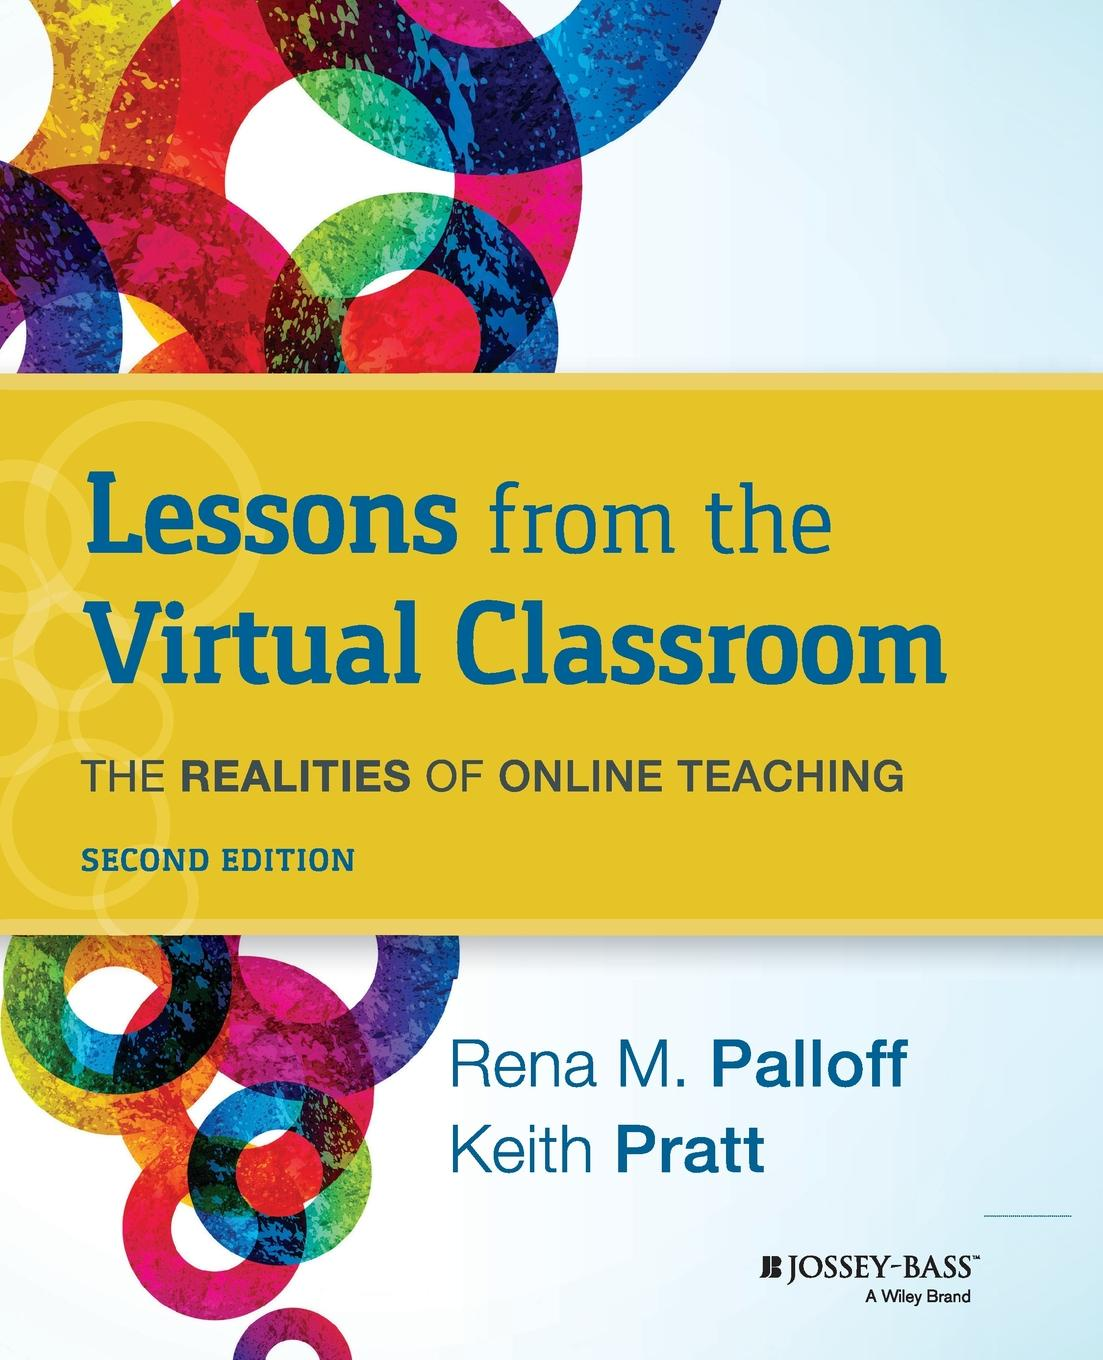 Rena M. Palloff Lessons from the Virtual Classroom. The Realities of Online Teaching, 2nd Edition james lang m small teaching everyday lessons from the science of learning